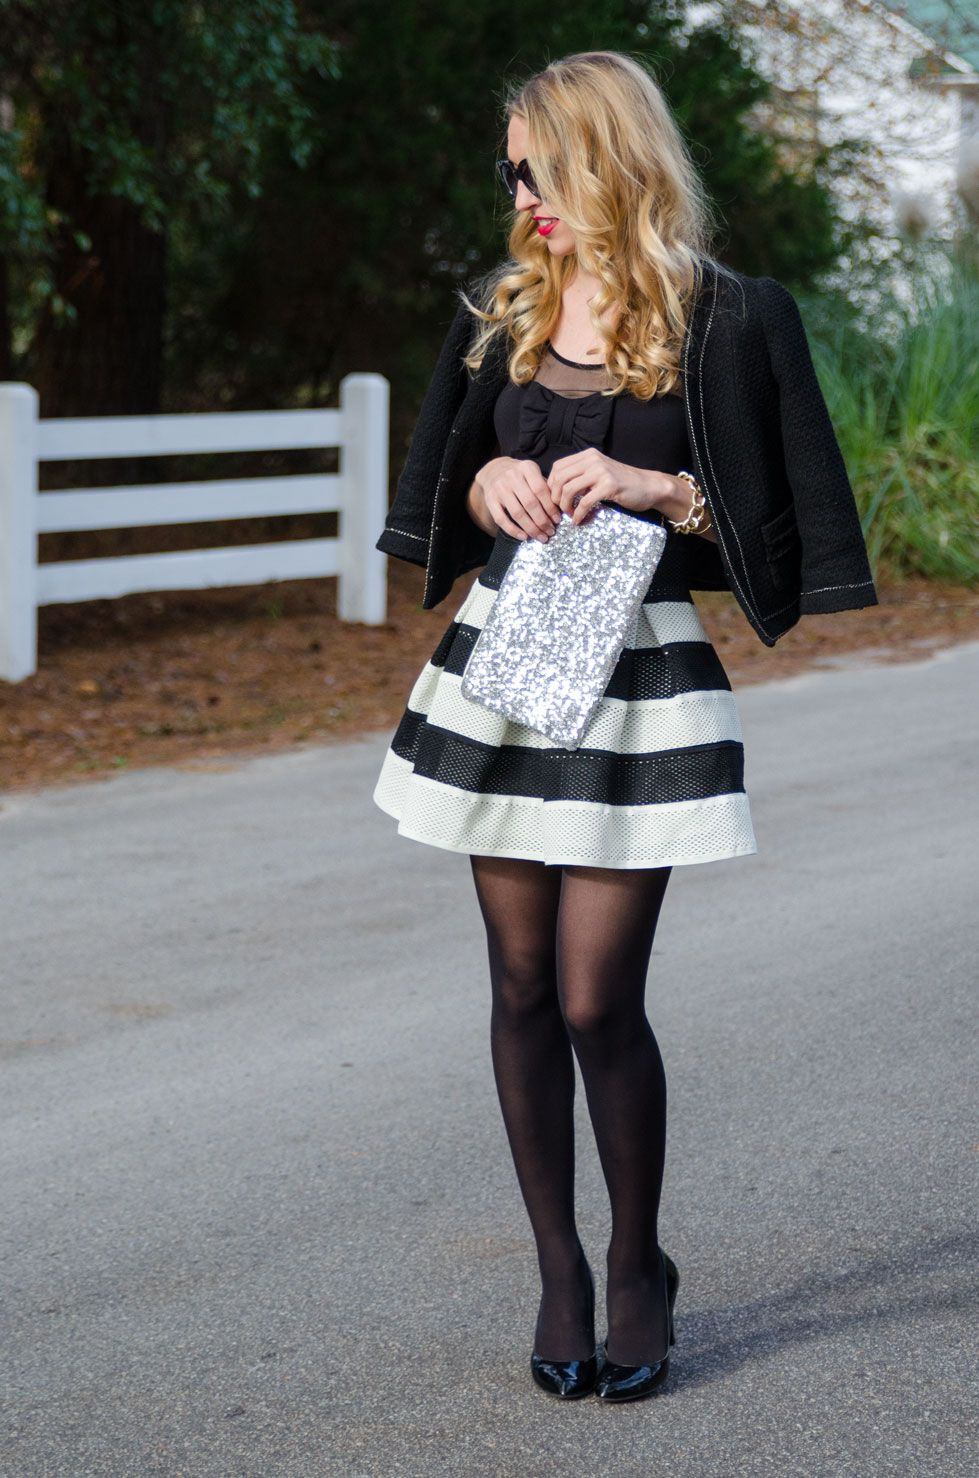 Black and White Skater Skirt Full | ❤ My Style ❤ | Pinterest ...